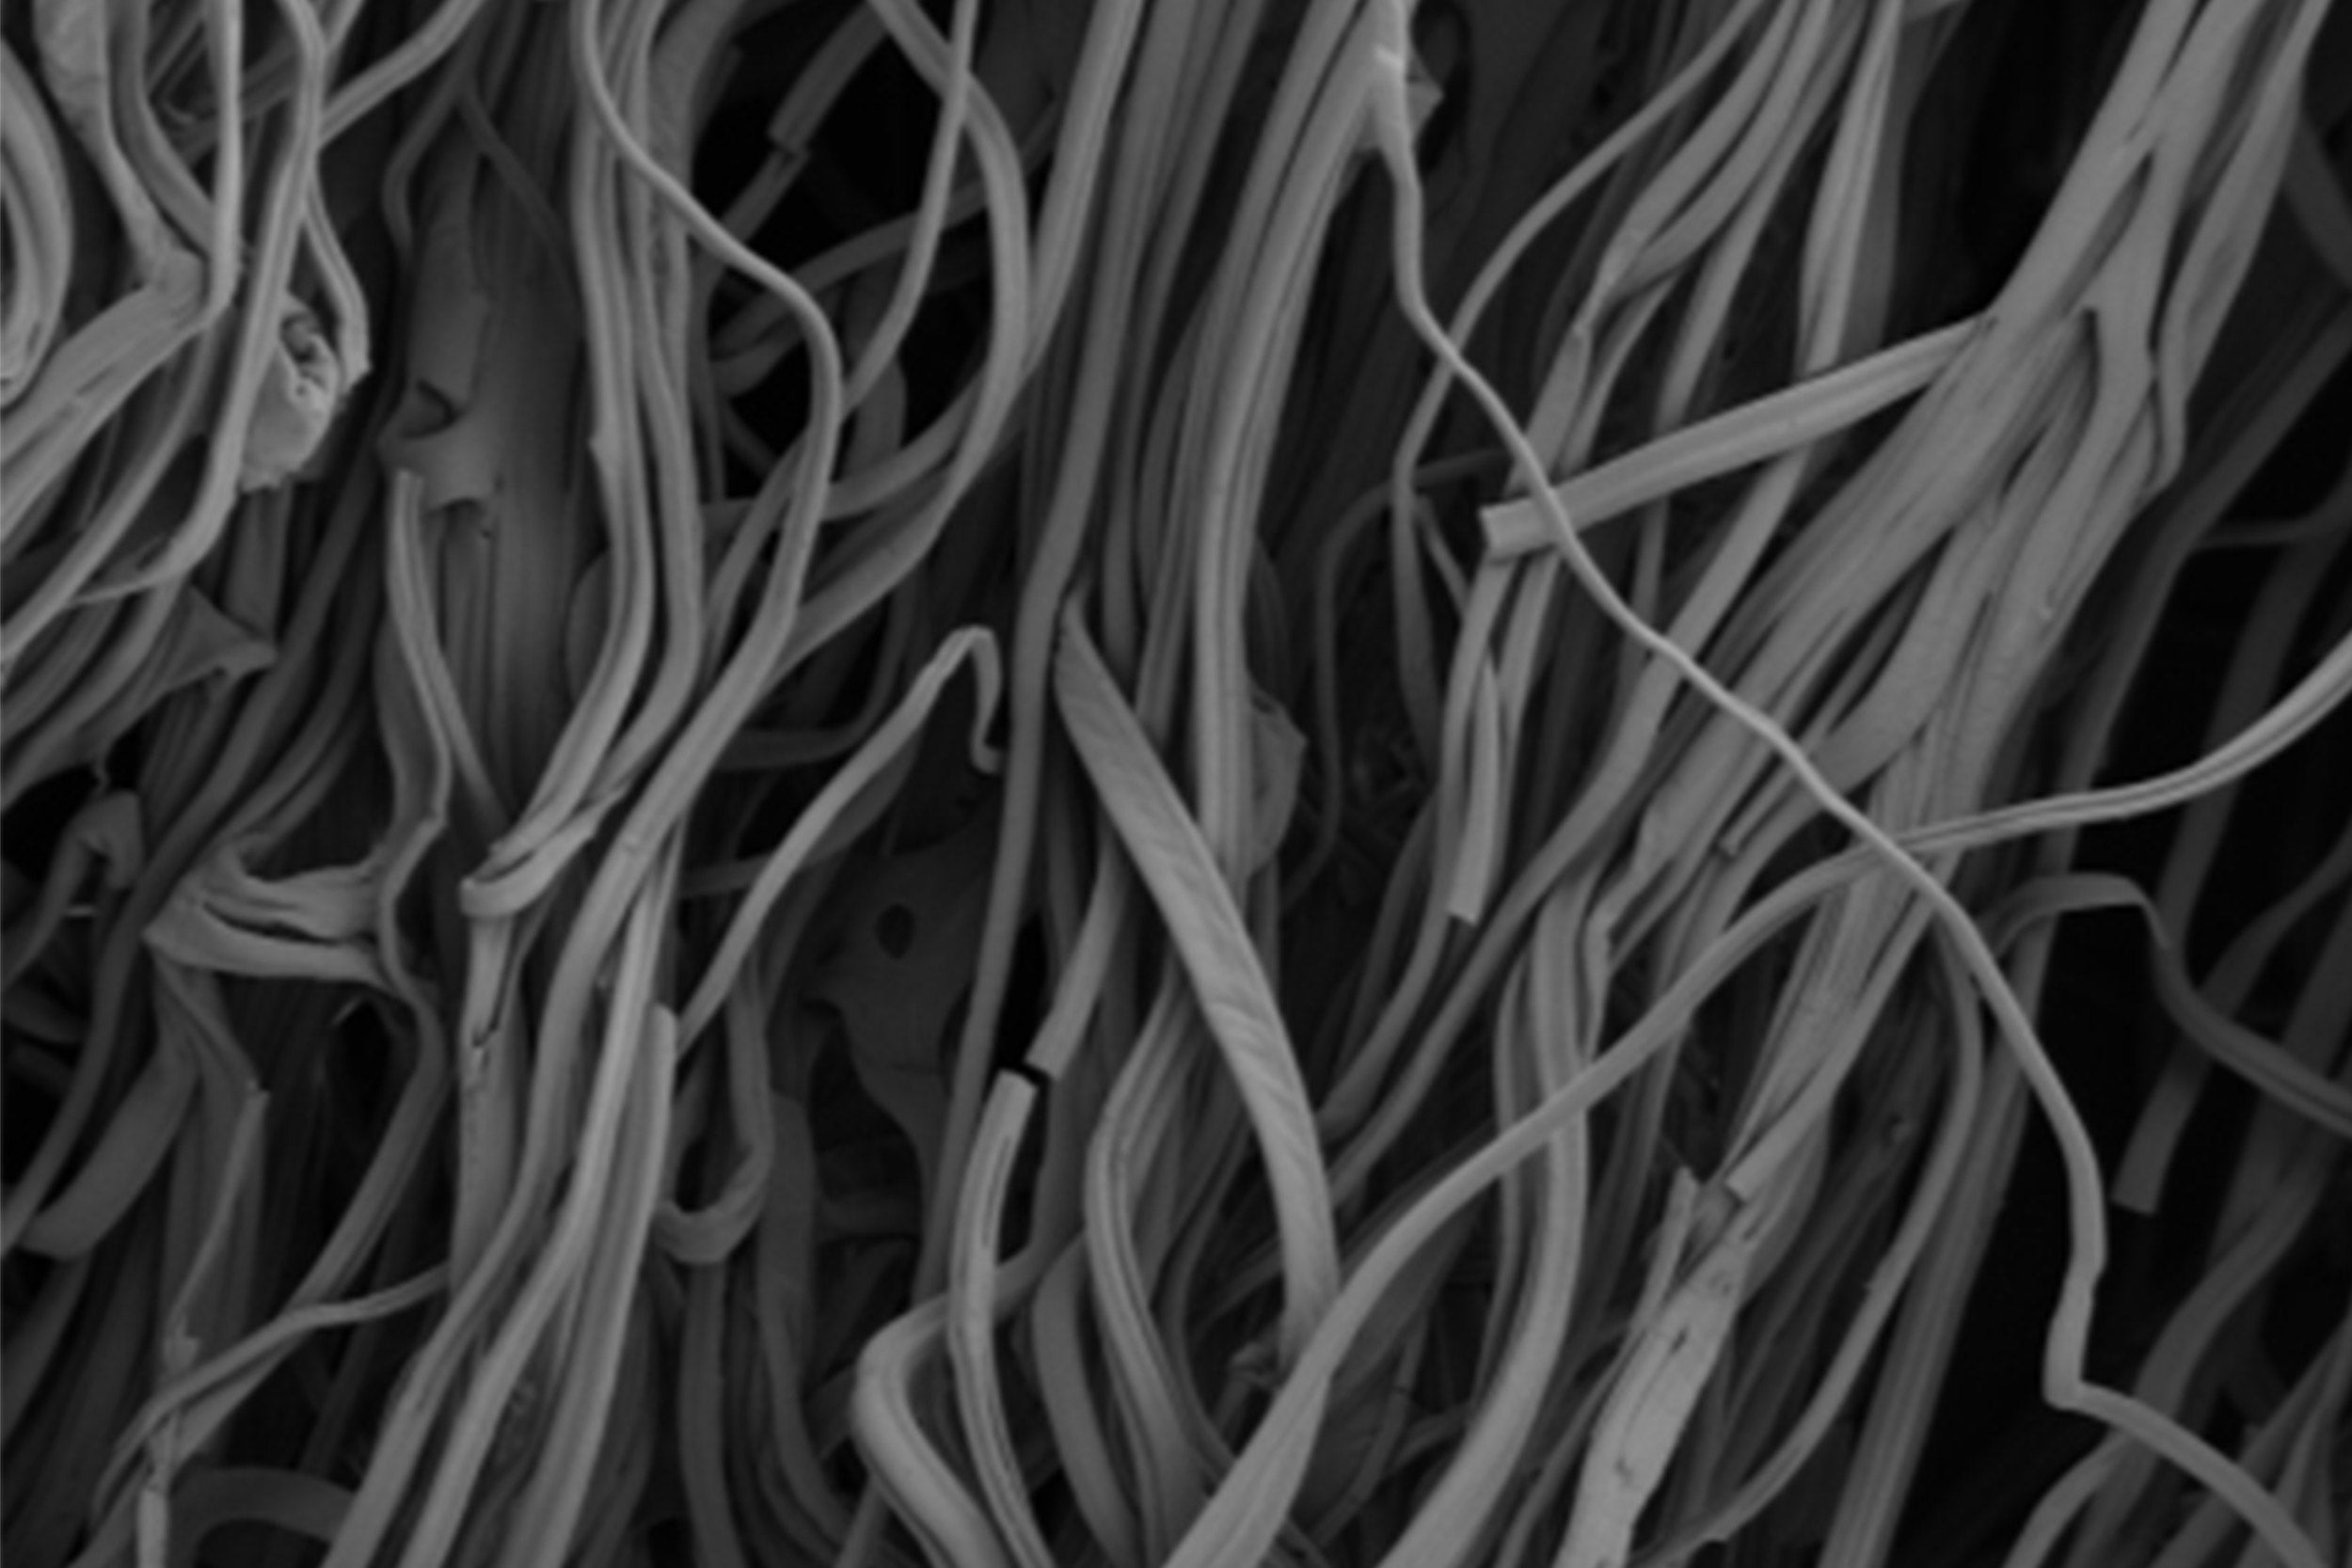 Images of gelatin fibers taken by scanning electron microscopy.